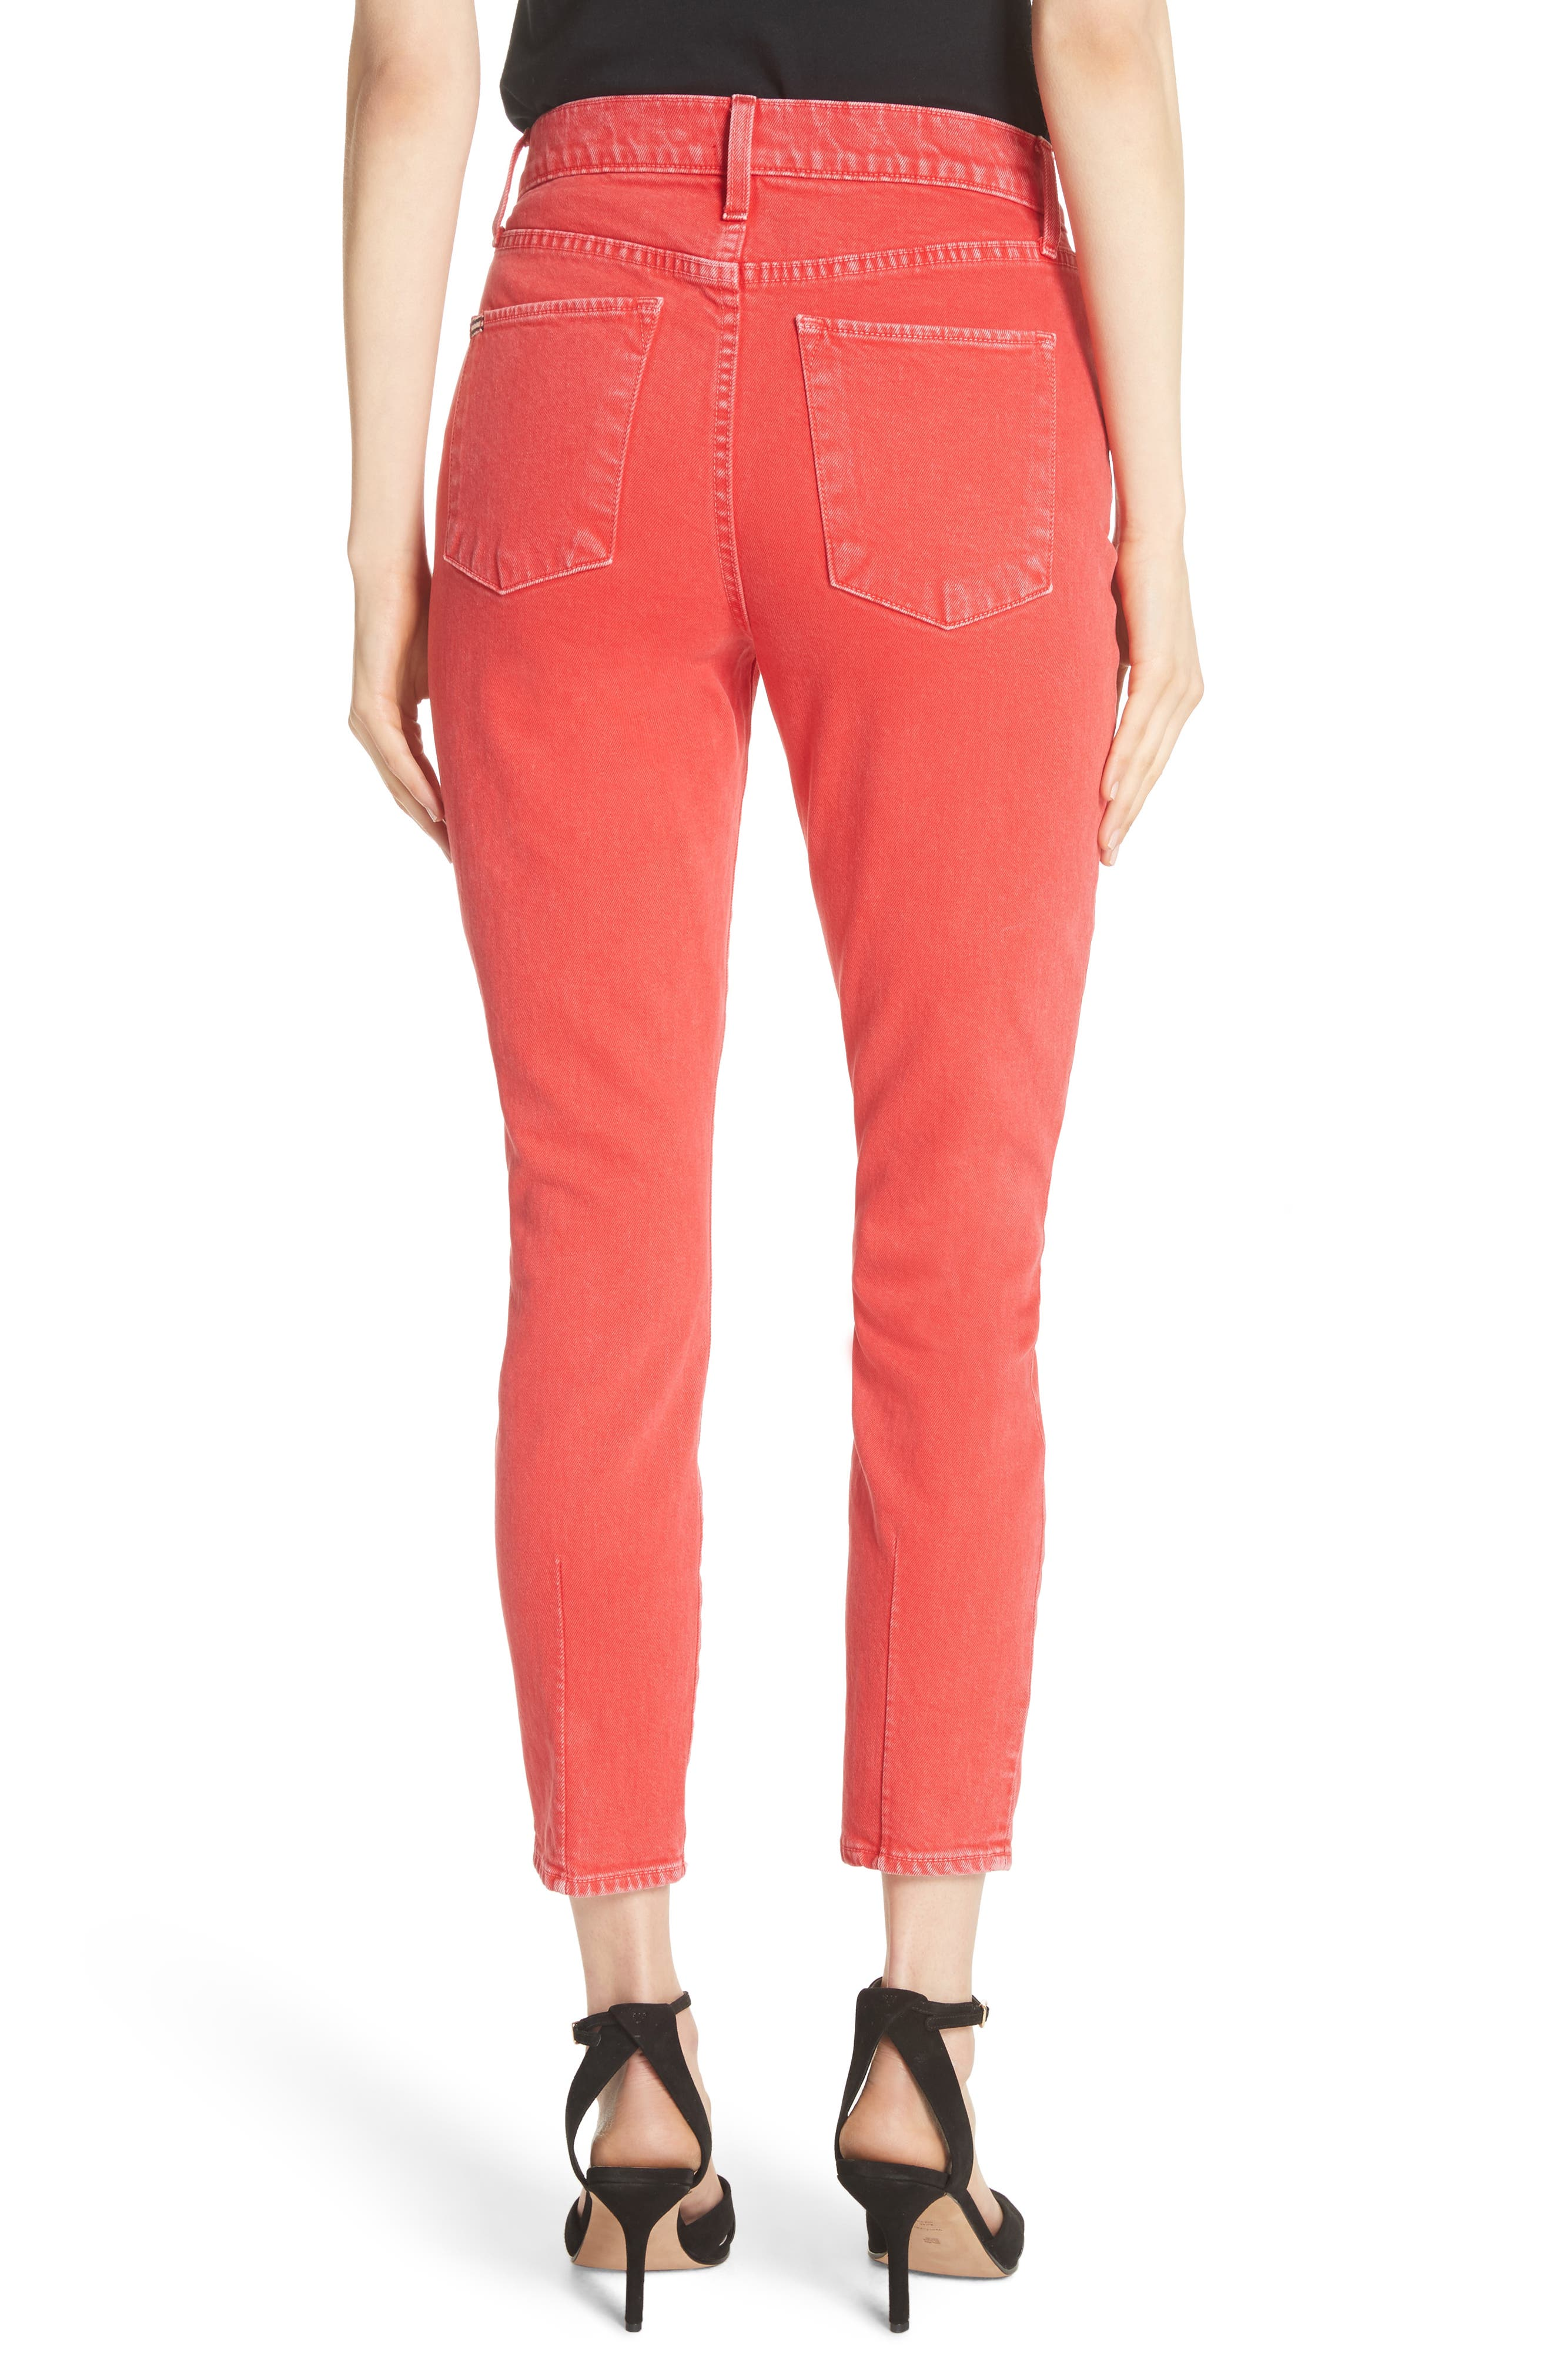 AO.LA Good High Rise Ankle Skinny Jeans,                             Alternate thumbnail 2, color,                             618